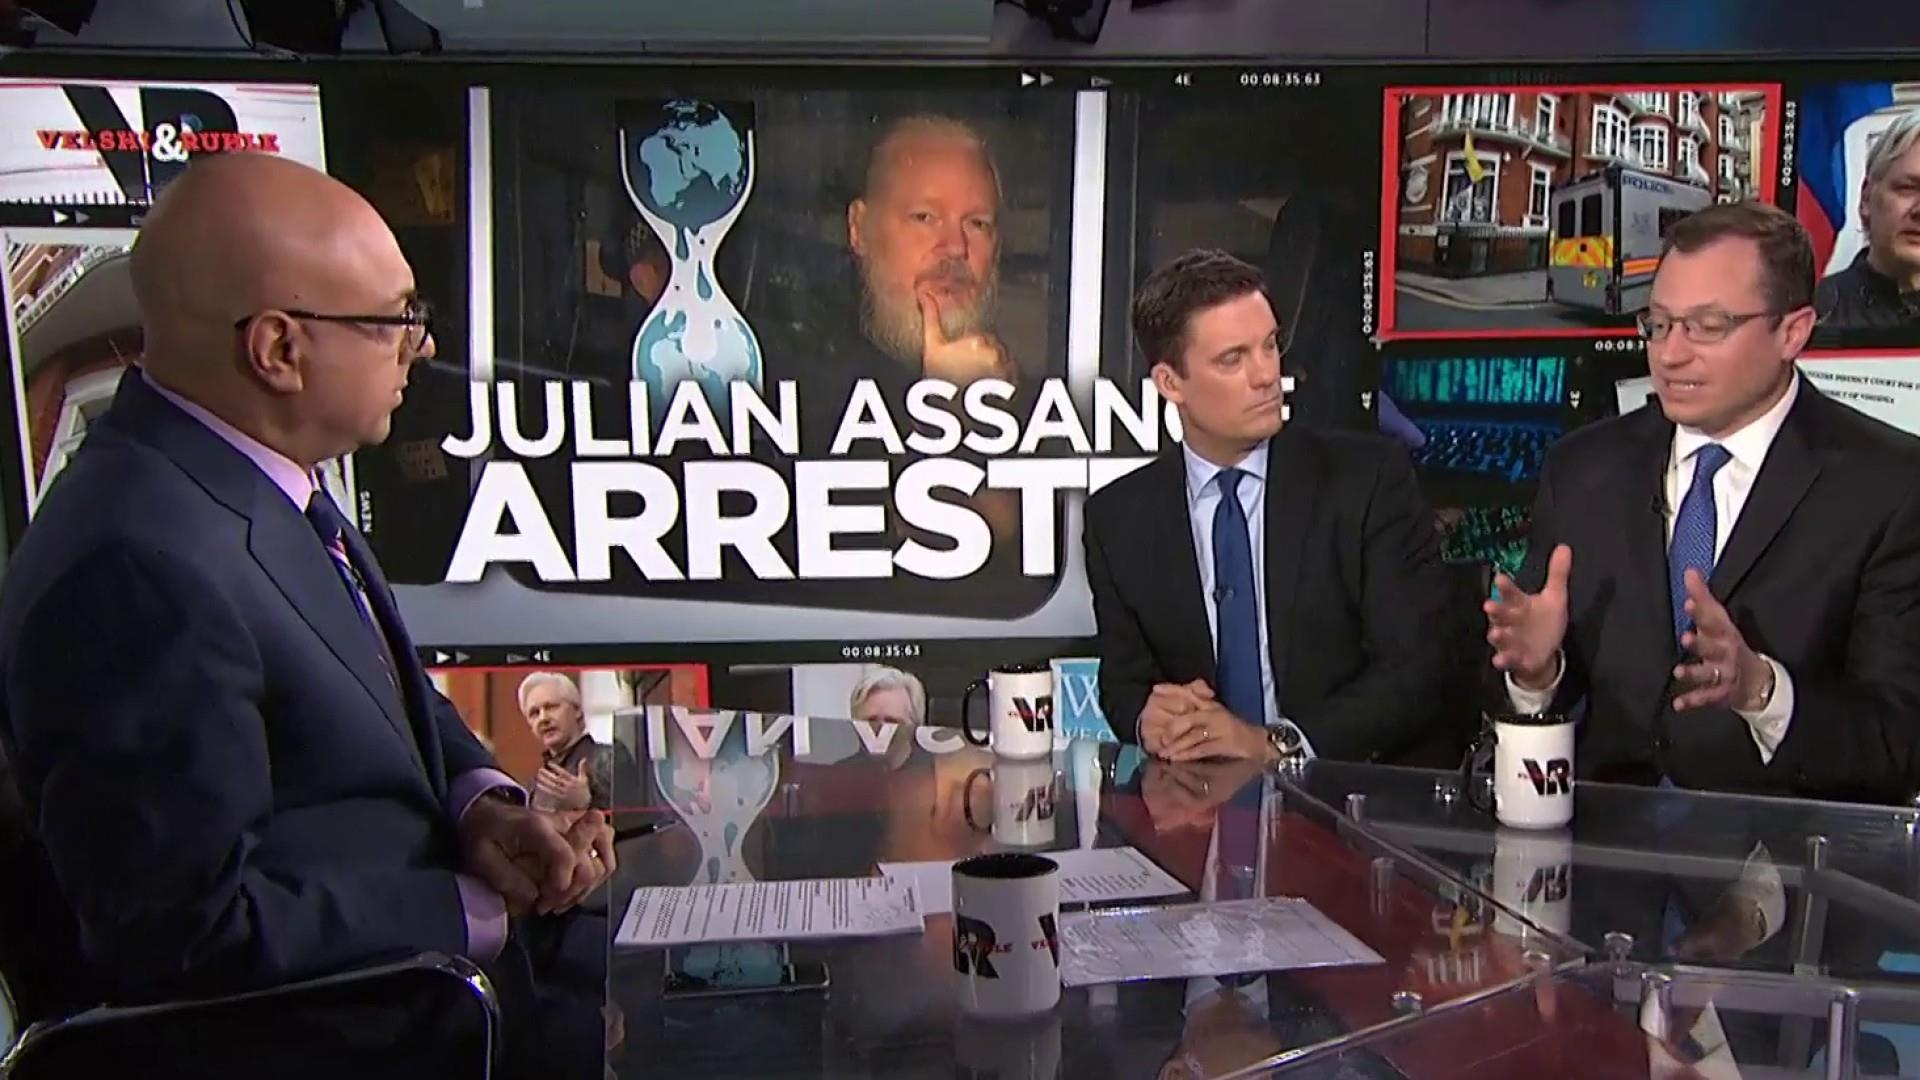 The charges against Julian Assange